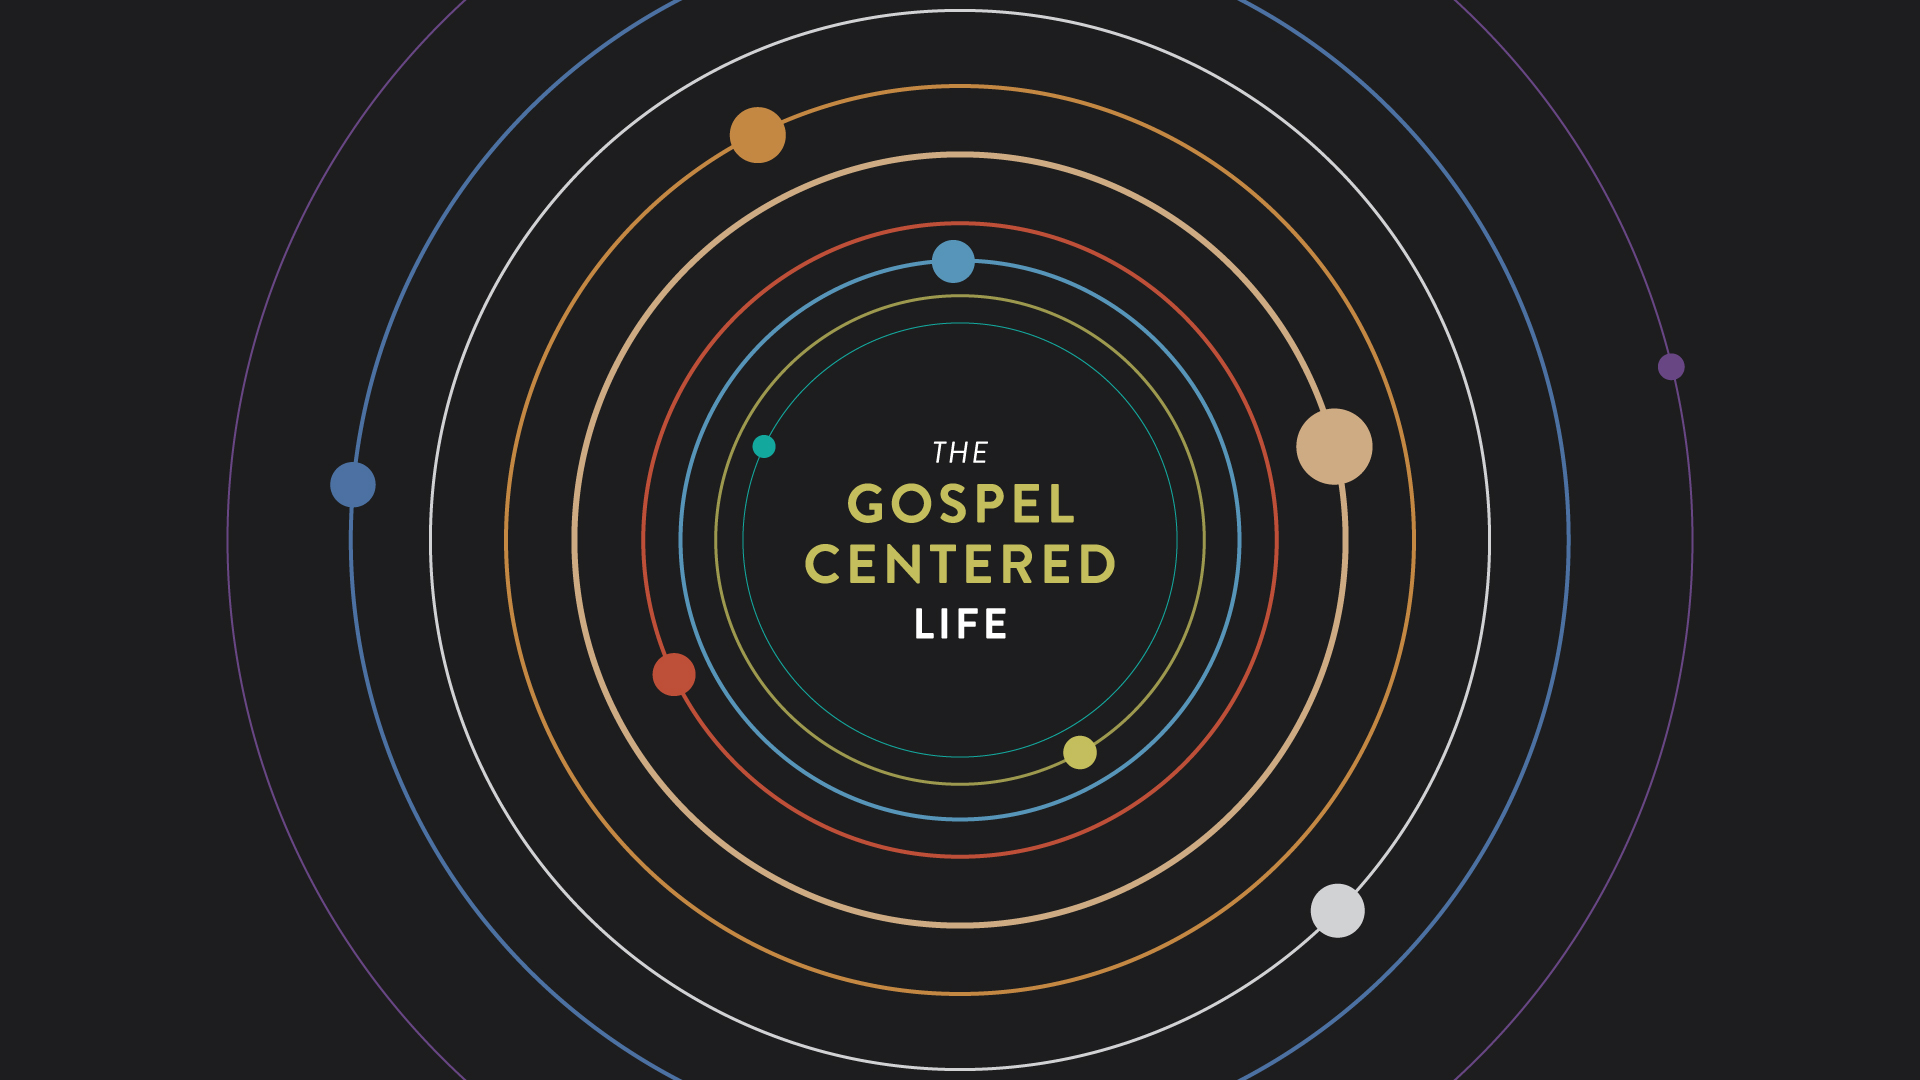 GospelCentered_slide_title.jpg